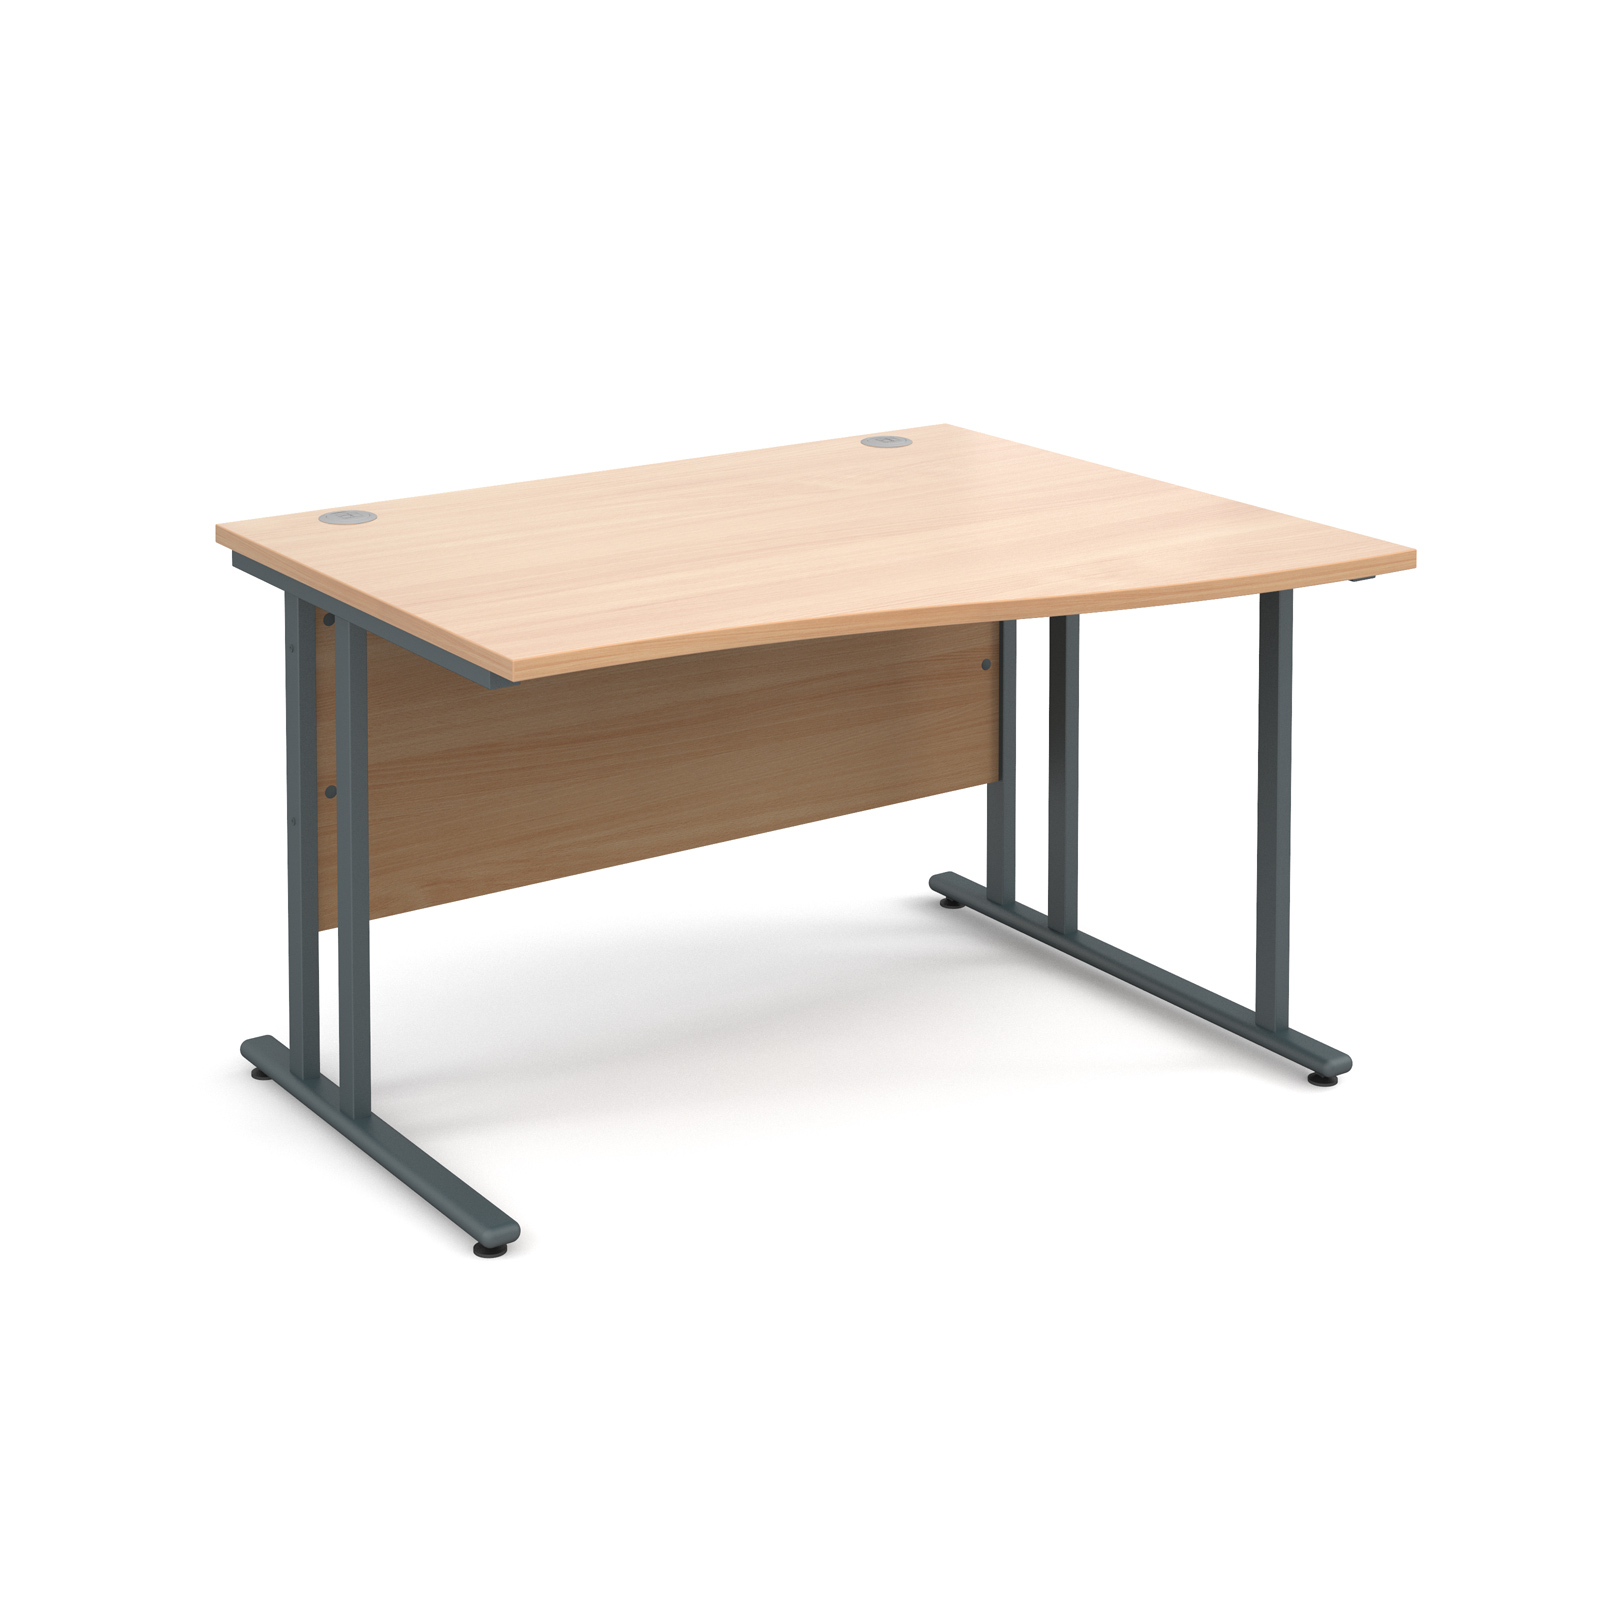 Image for Maestro 25 GL right hand wave desk 1200mm - graphite cantilever frame, beech top